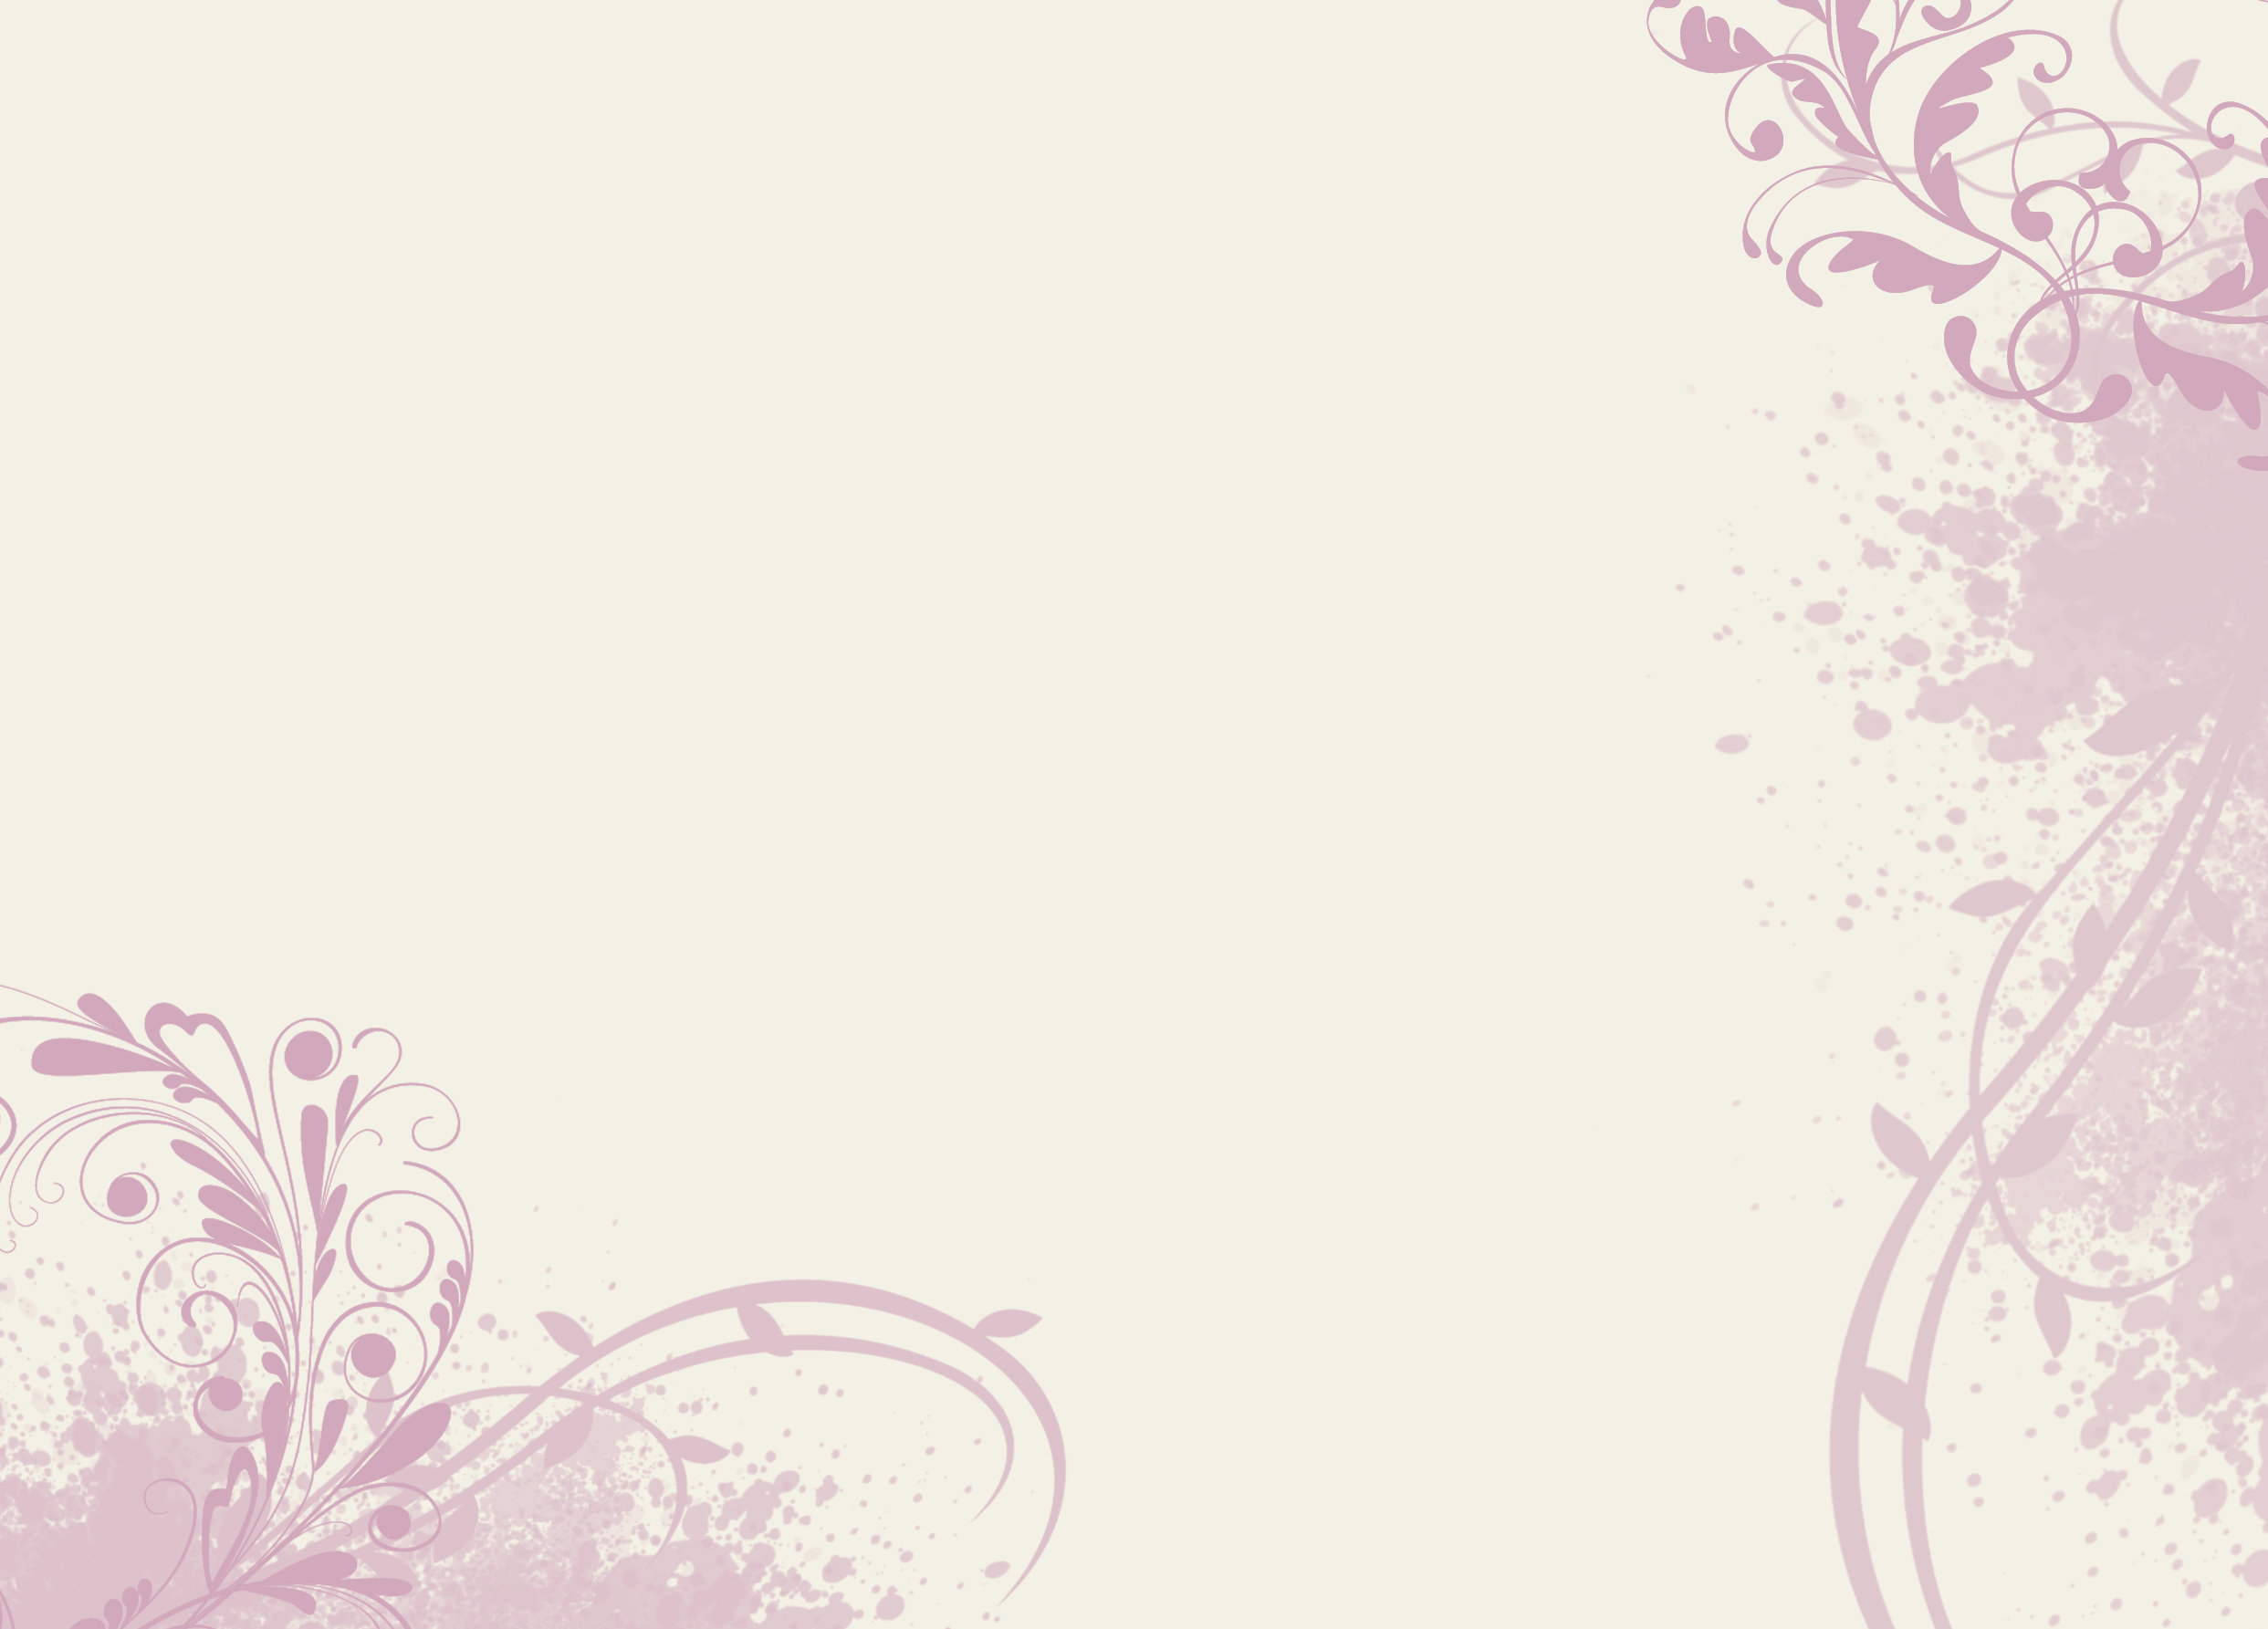 Wedding Invitation Background Designs Lovely Pin by Kitty Cat On Invitation Background